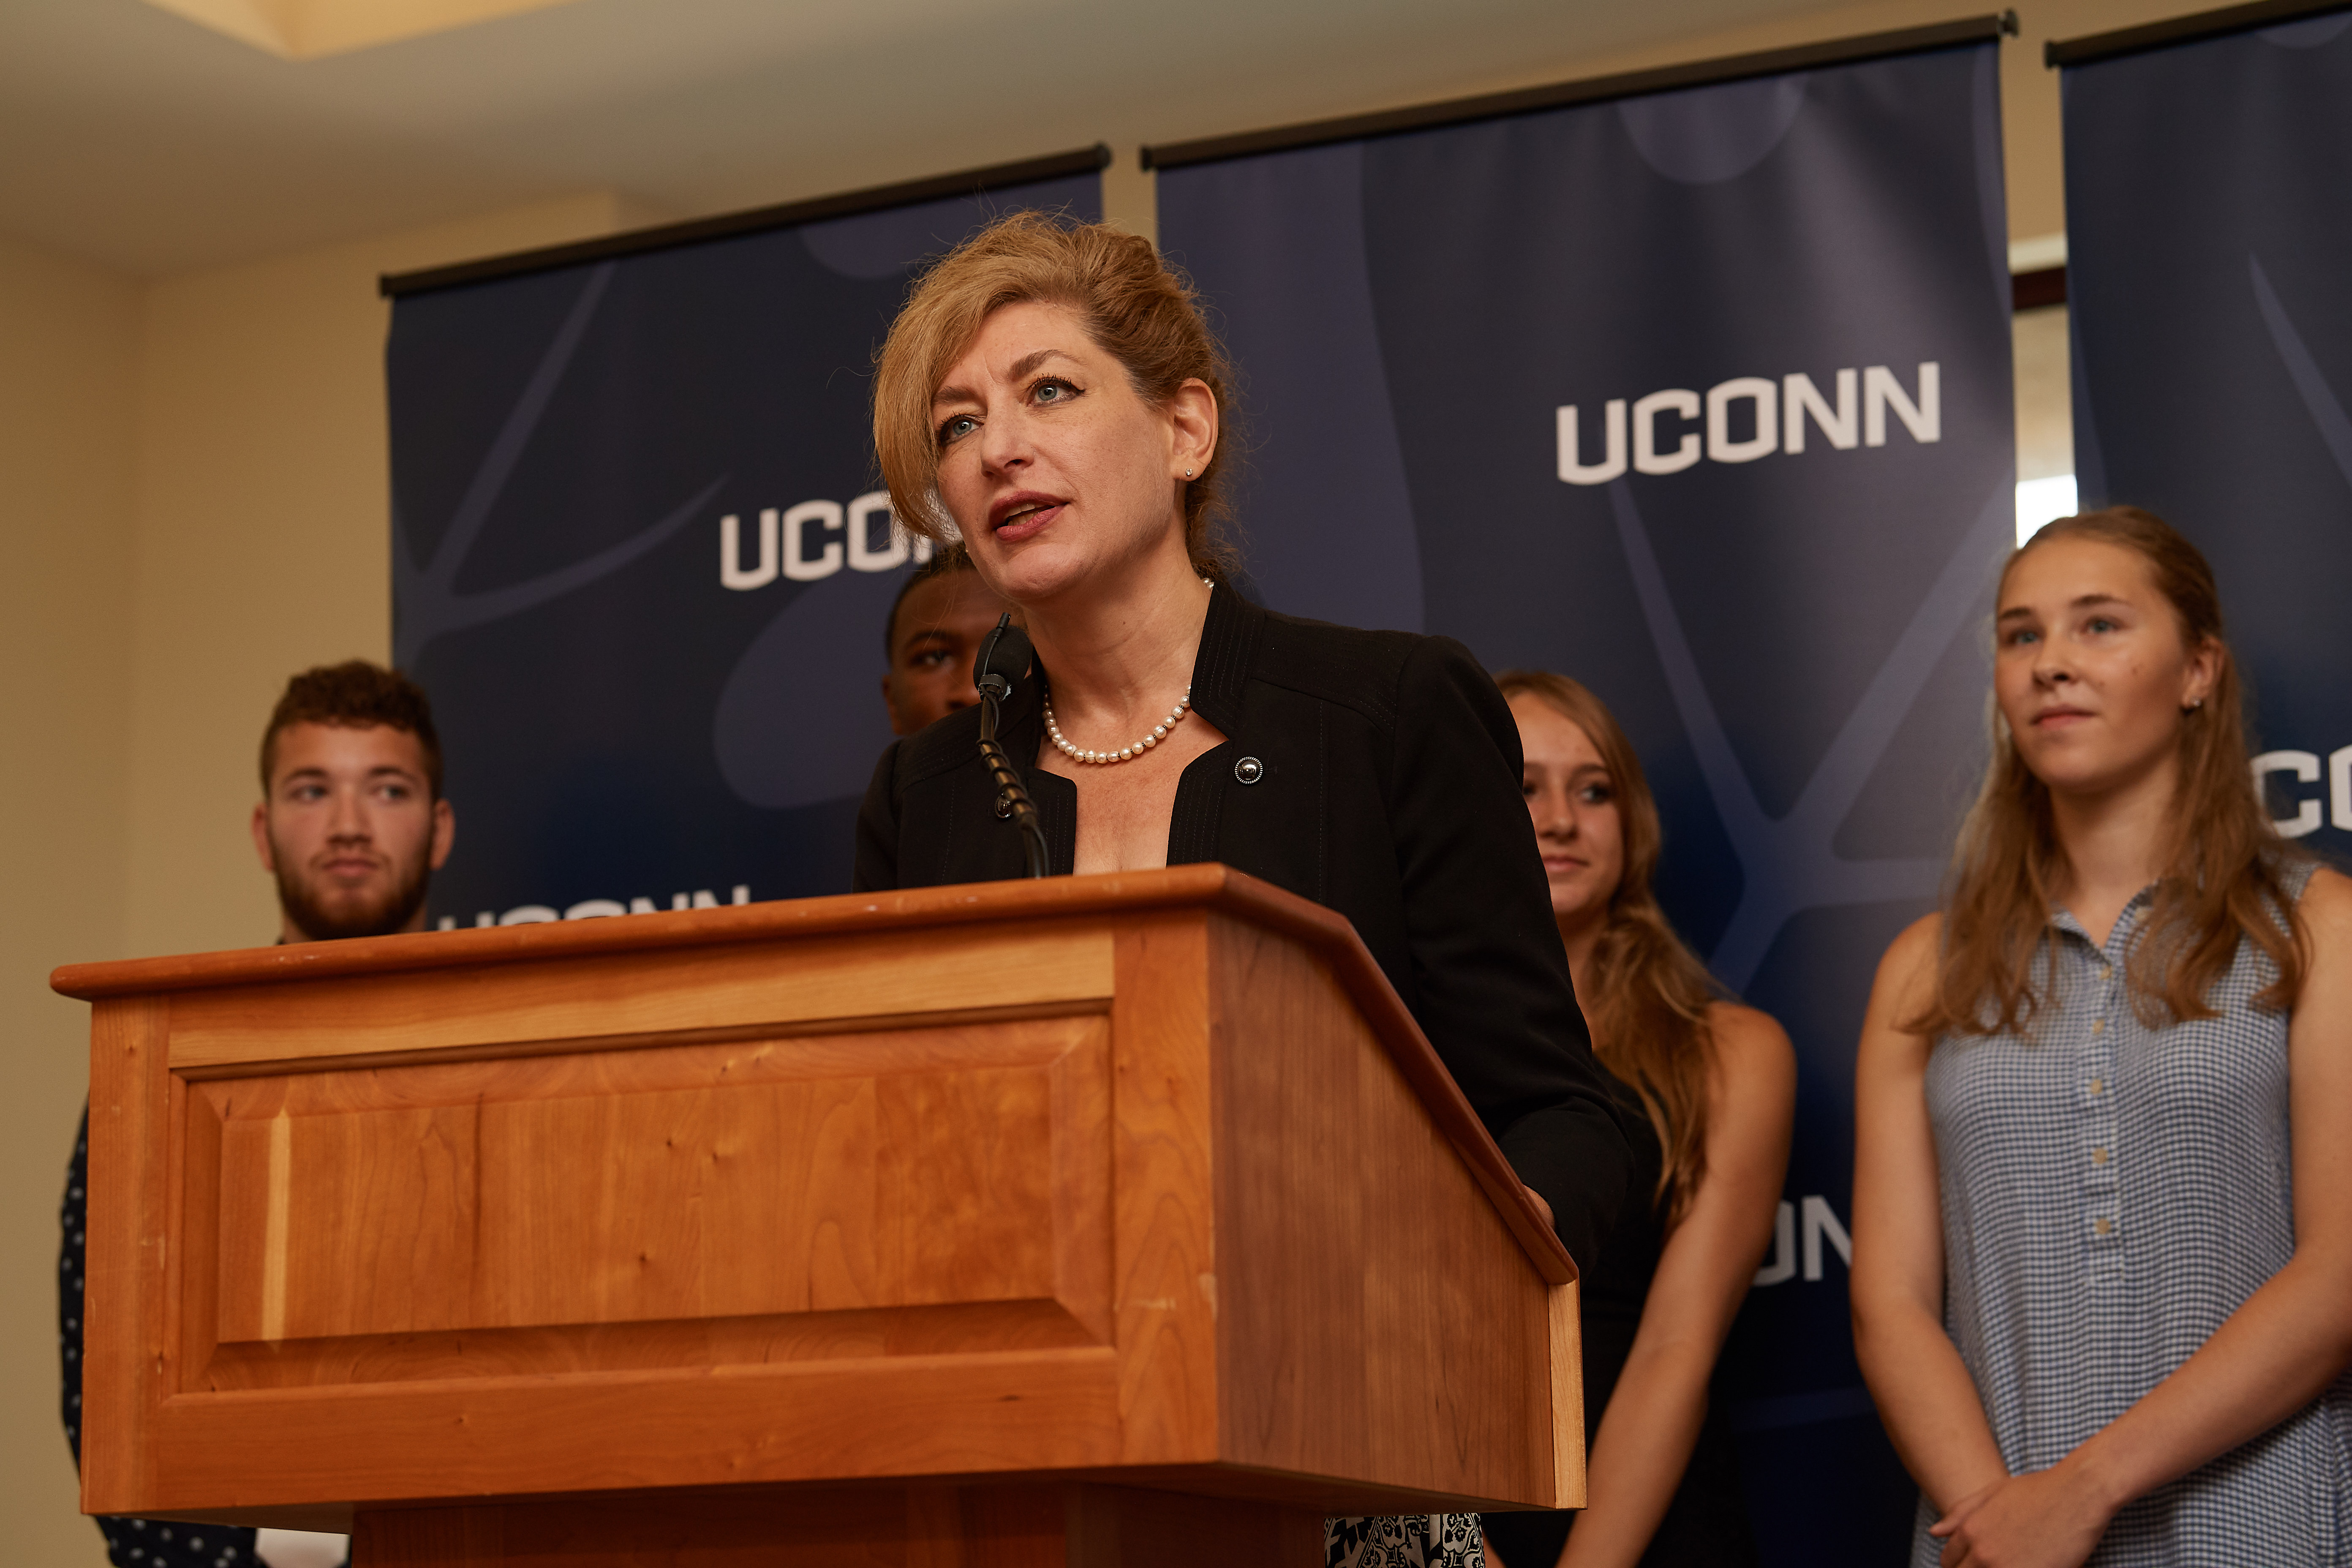 President Susan Herbst speaks at a press conference to announce details of the UConn Class of 2022 held at the Hall of Fame at the state capitol on Aug. 22, 2018. (Peter Morenus/UConn Photo)